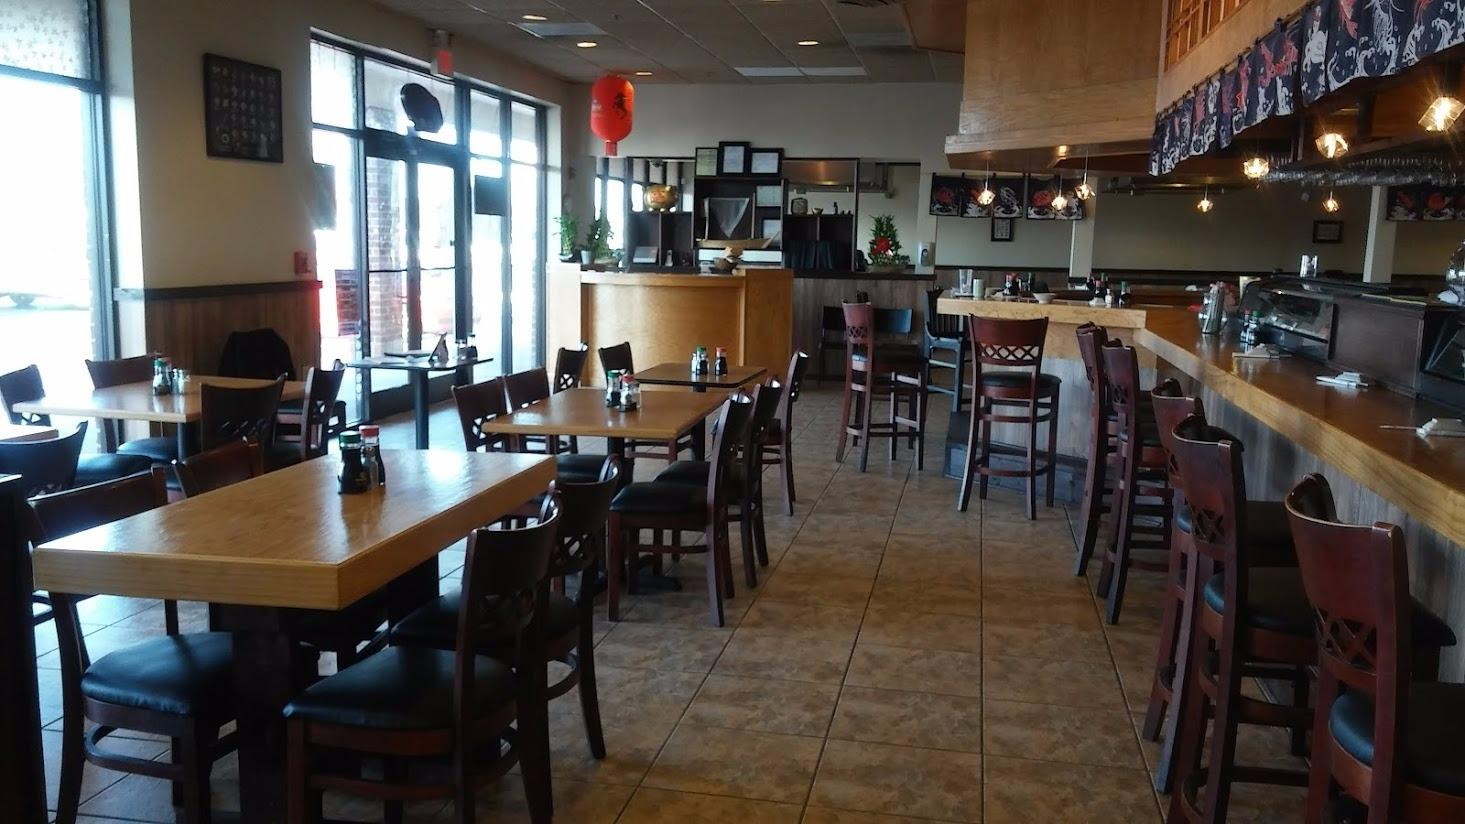 Yosi japanese seafood steak house mcdonough georgia ga for Steak and fish restaurants near me